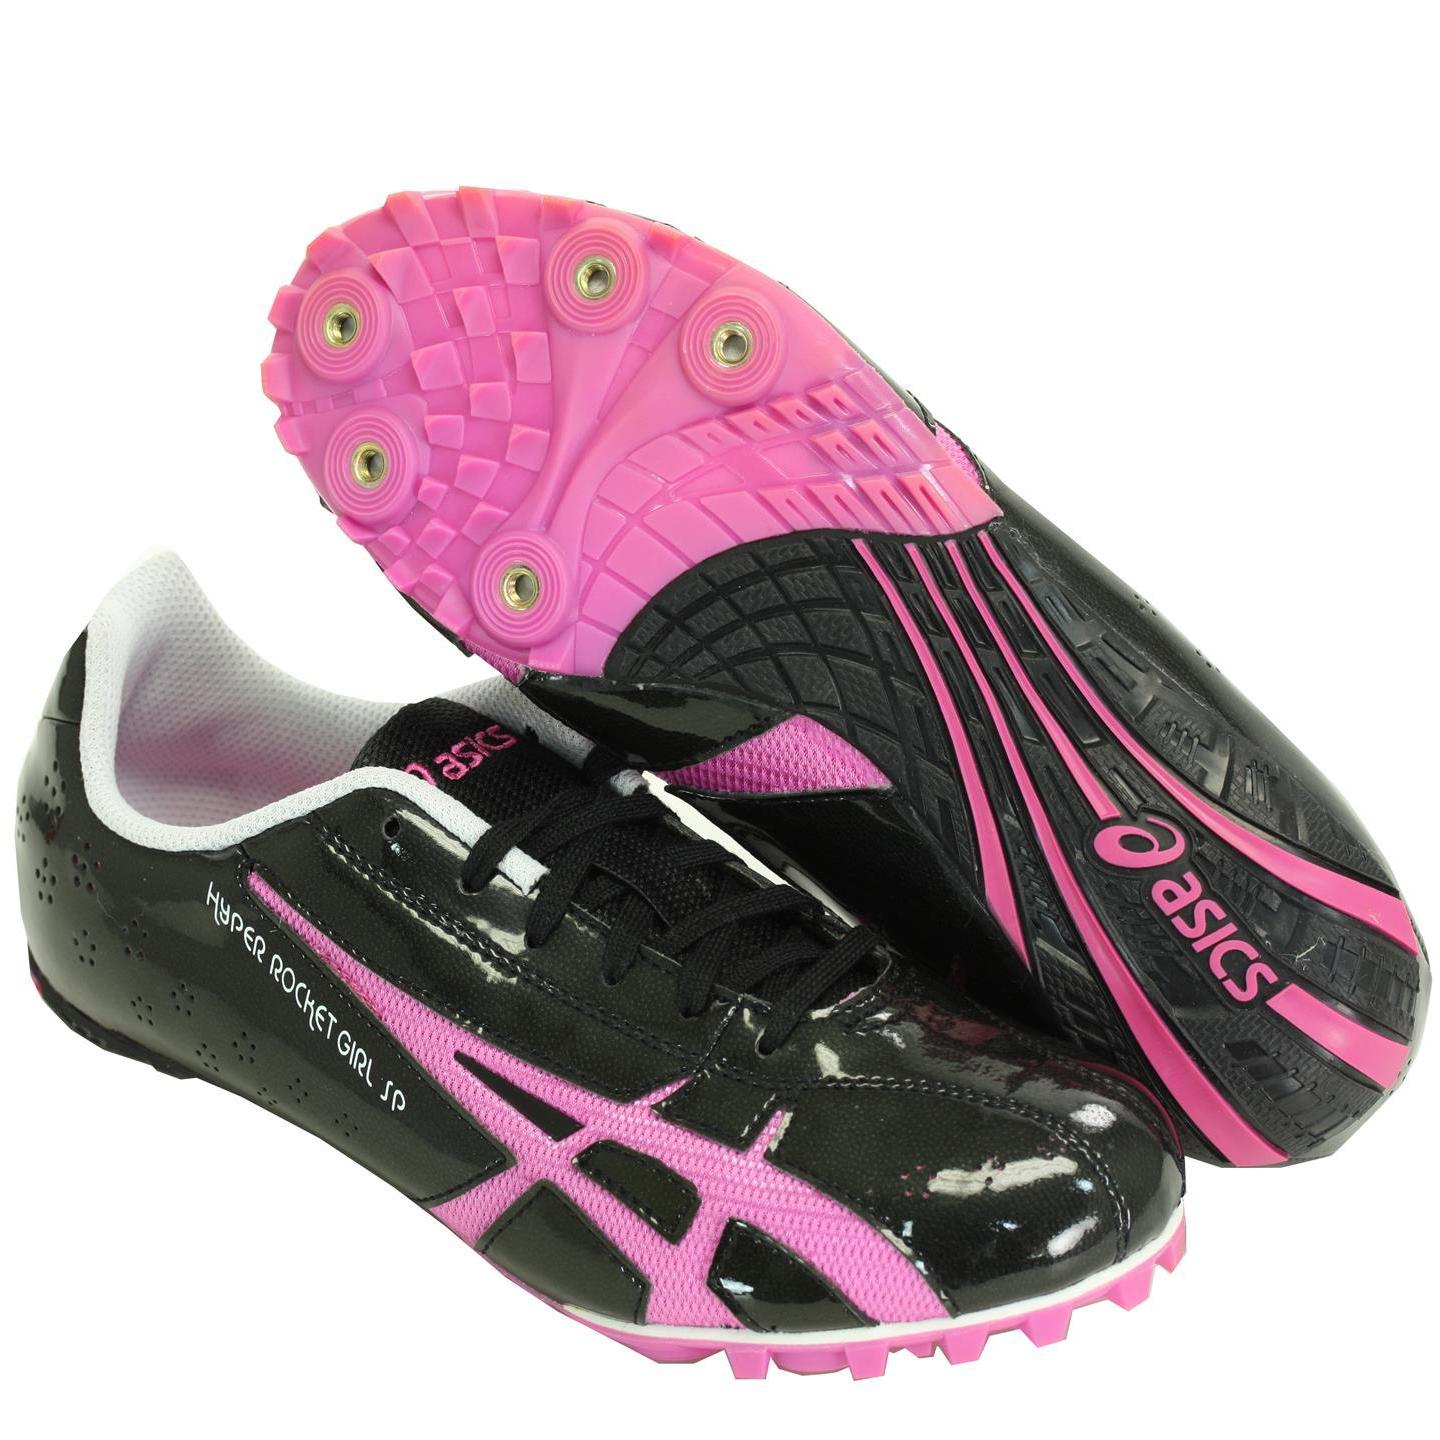 31b0833d3f3f Shop ASICS G953Y 9021 Womens Hyper Rocket Girl SP3 Track Spikes Black    Raspberry - Free Shipping On Orders Over  45 - Overstock - 10541935